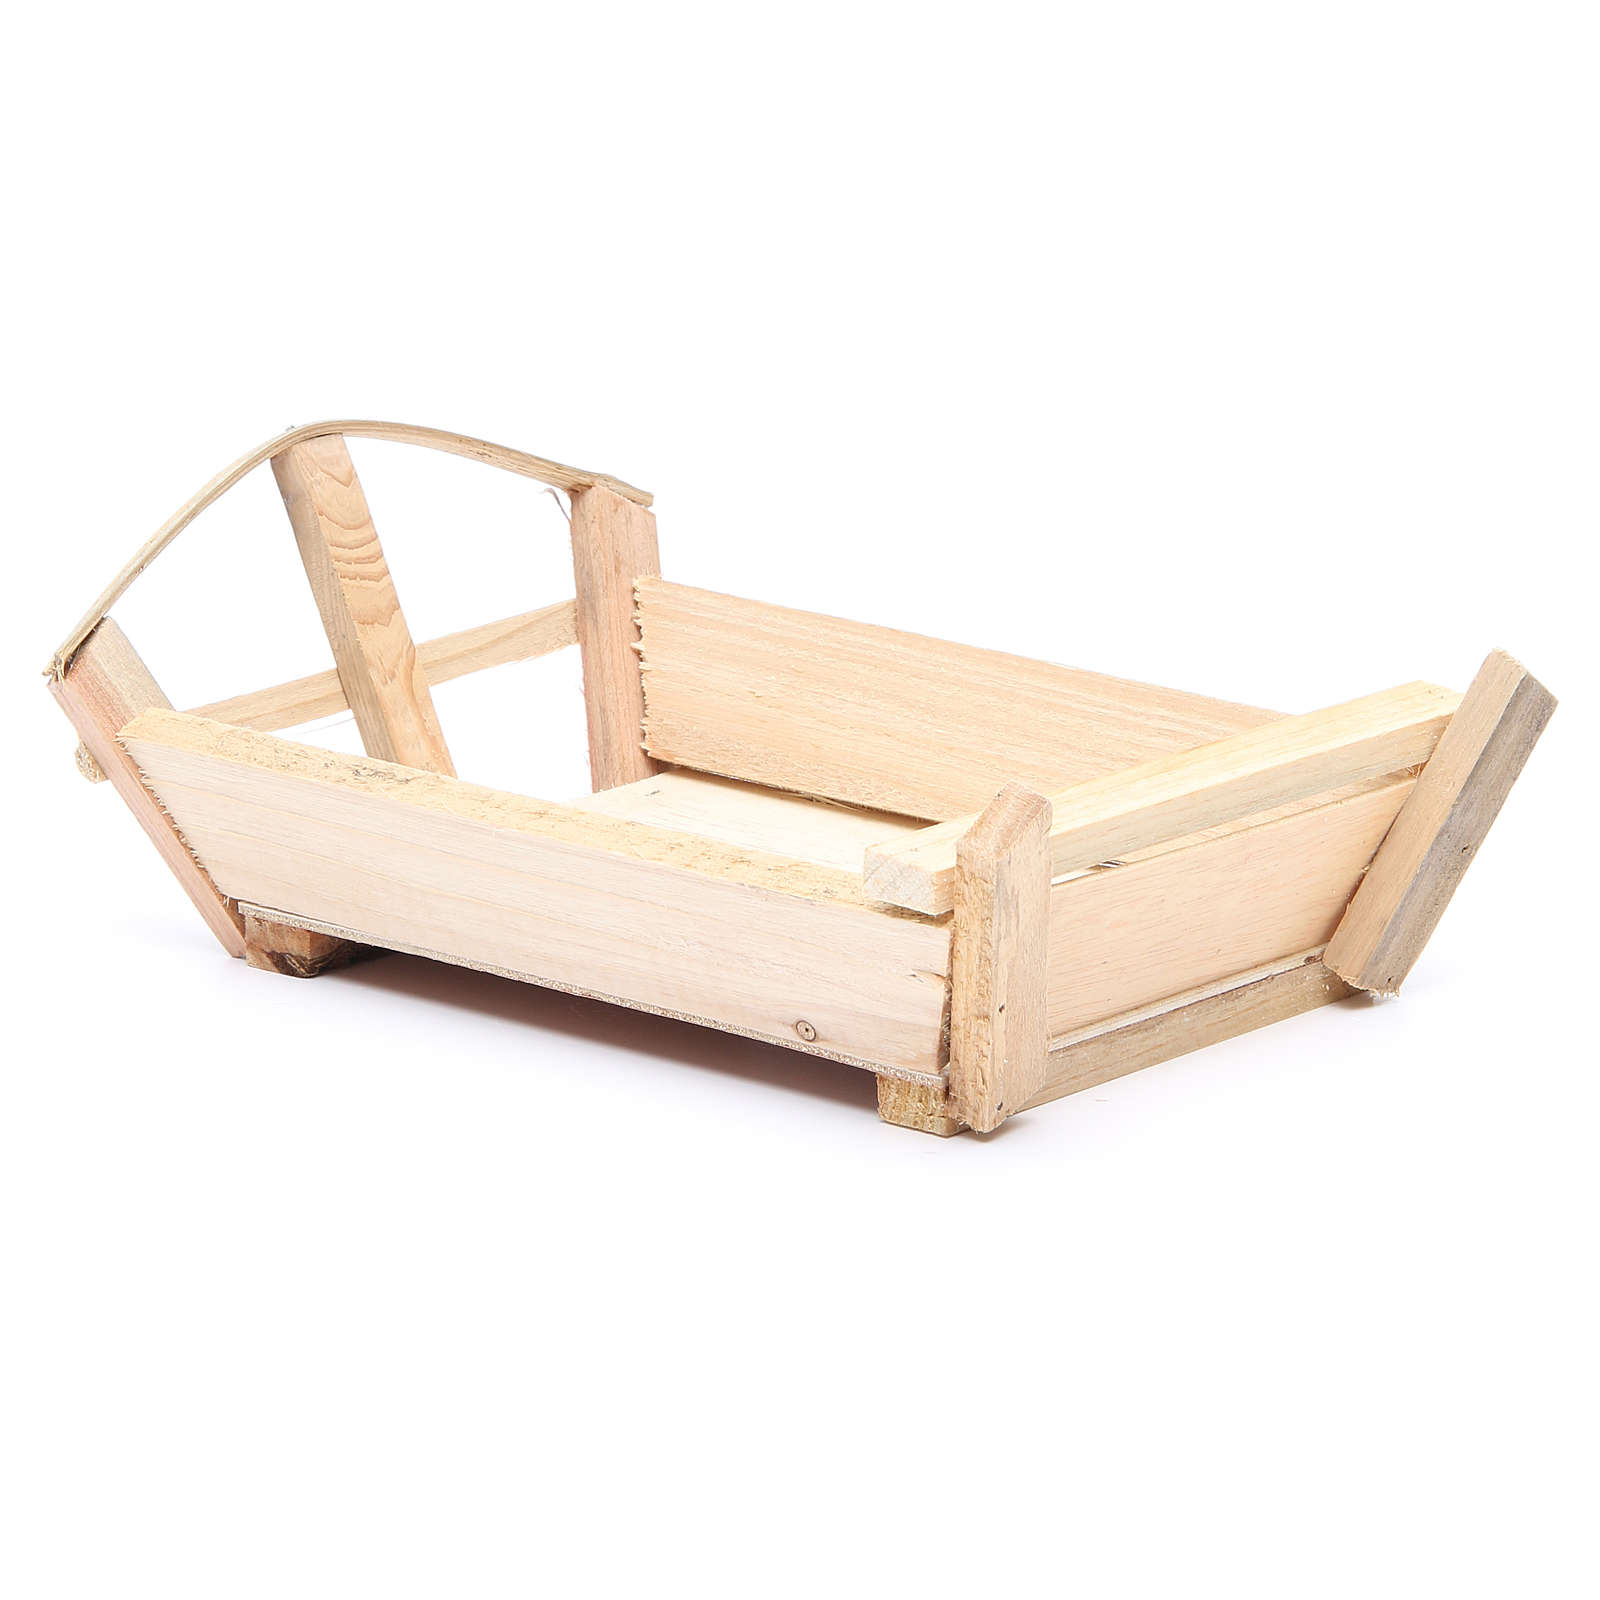 Nativity accessory, cradle in wood for Baby Jesus 10x22x13cm 3